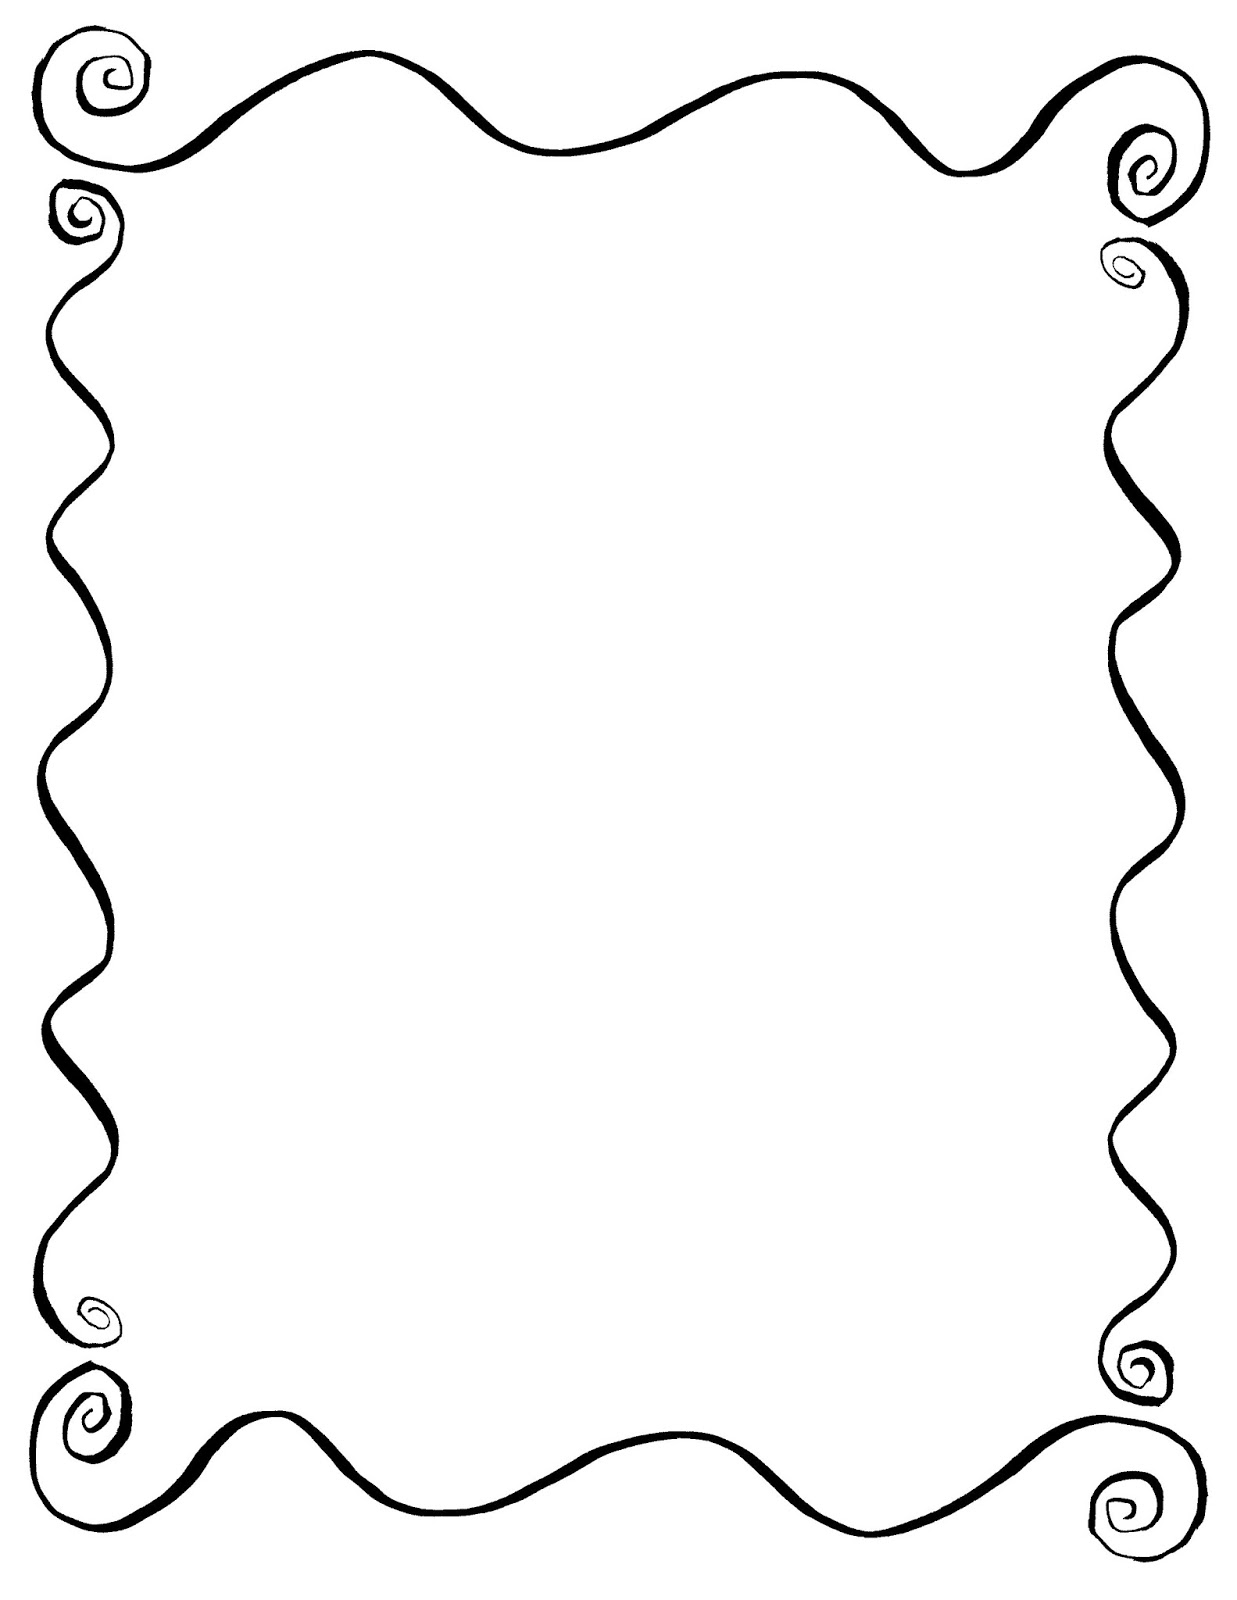 Digital Stamp Design Hand Drawn Decorative Frame Digital